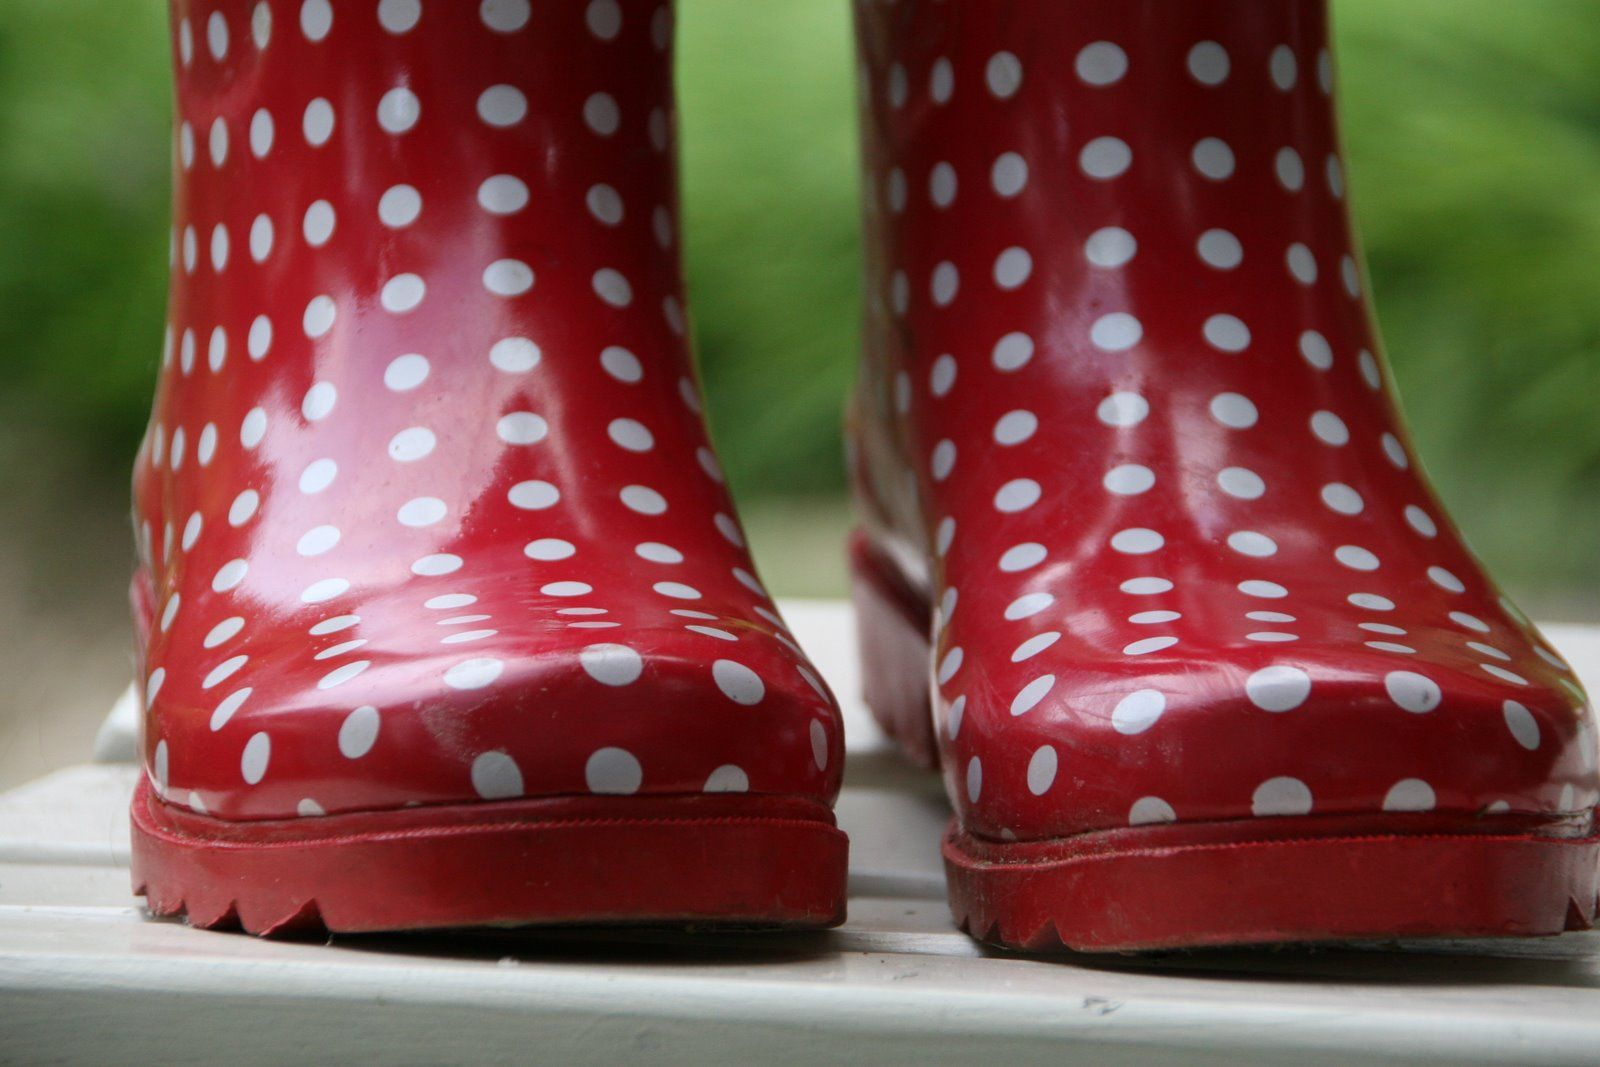 Red Polka-Dot Wellies - oh how I wish I had red ones instead of black polka-dots :)